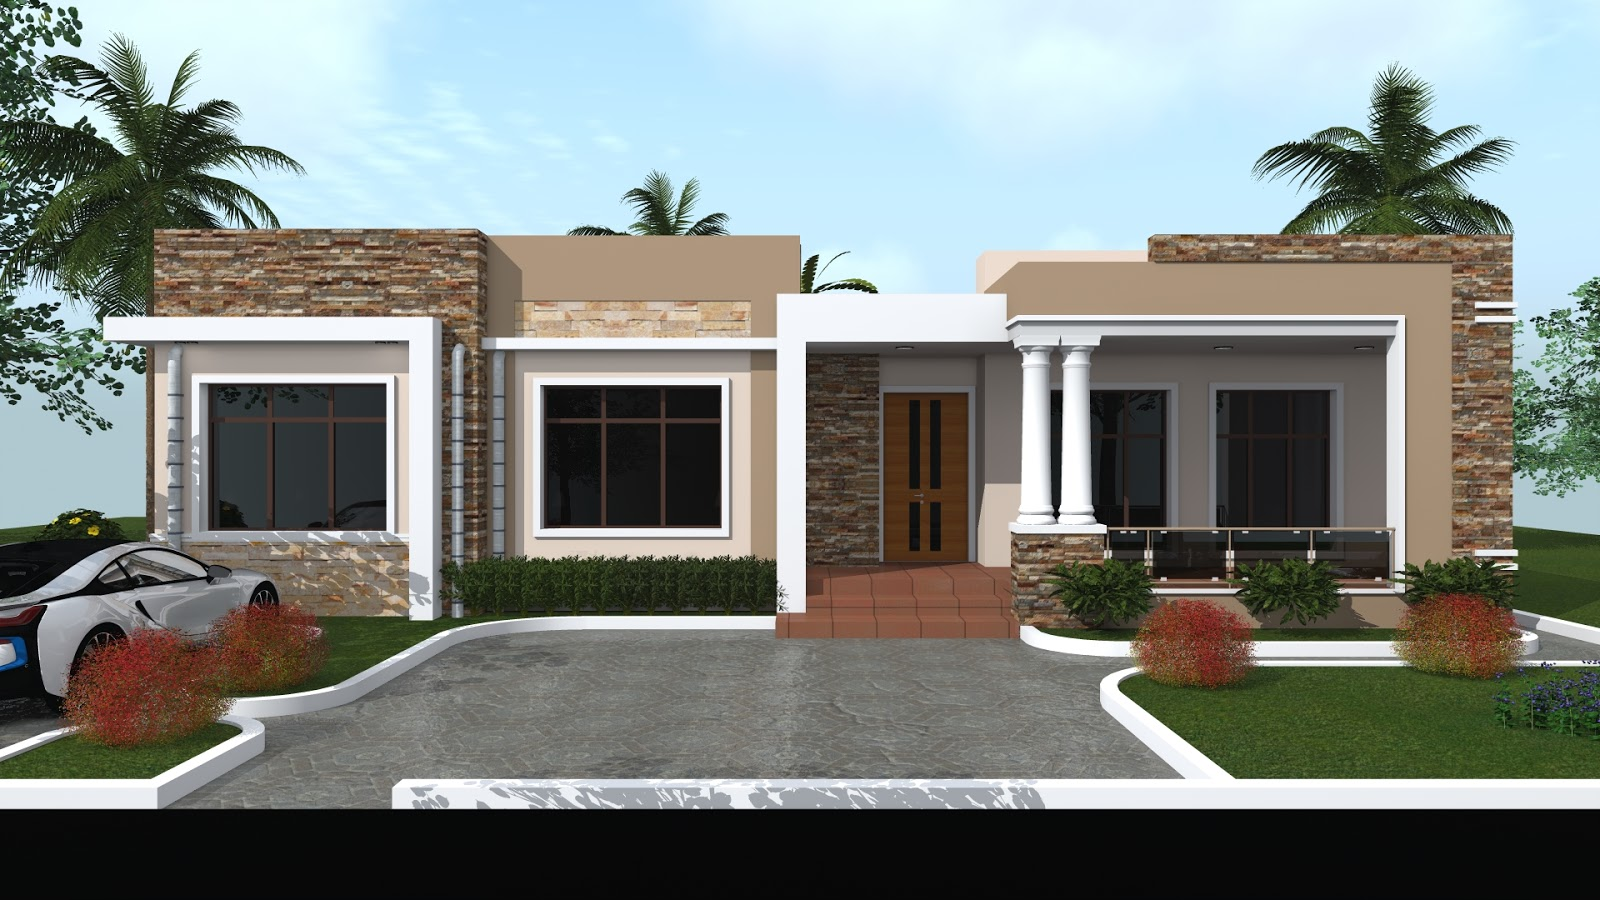 3 bedroom s House Plan (Flat Roofing - ID MA 92 )